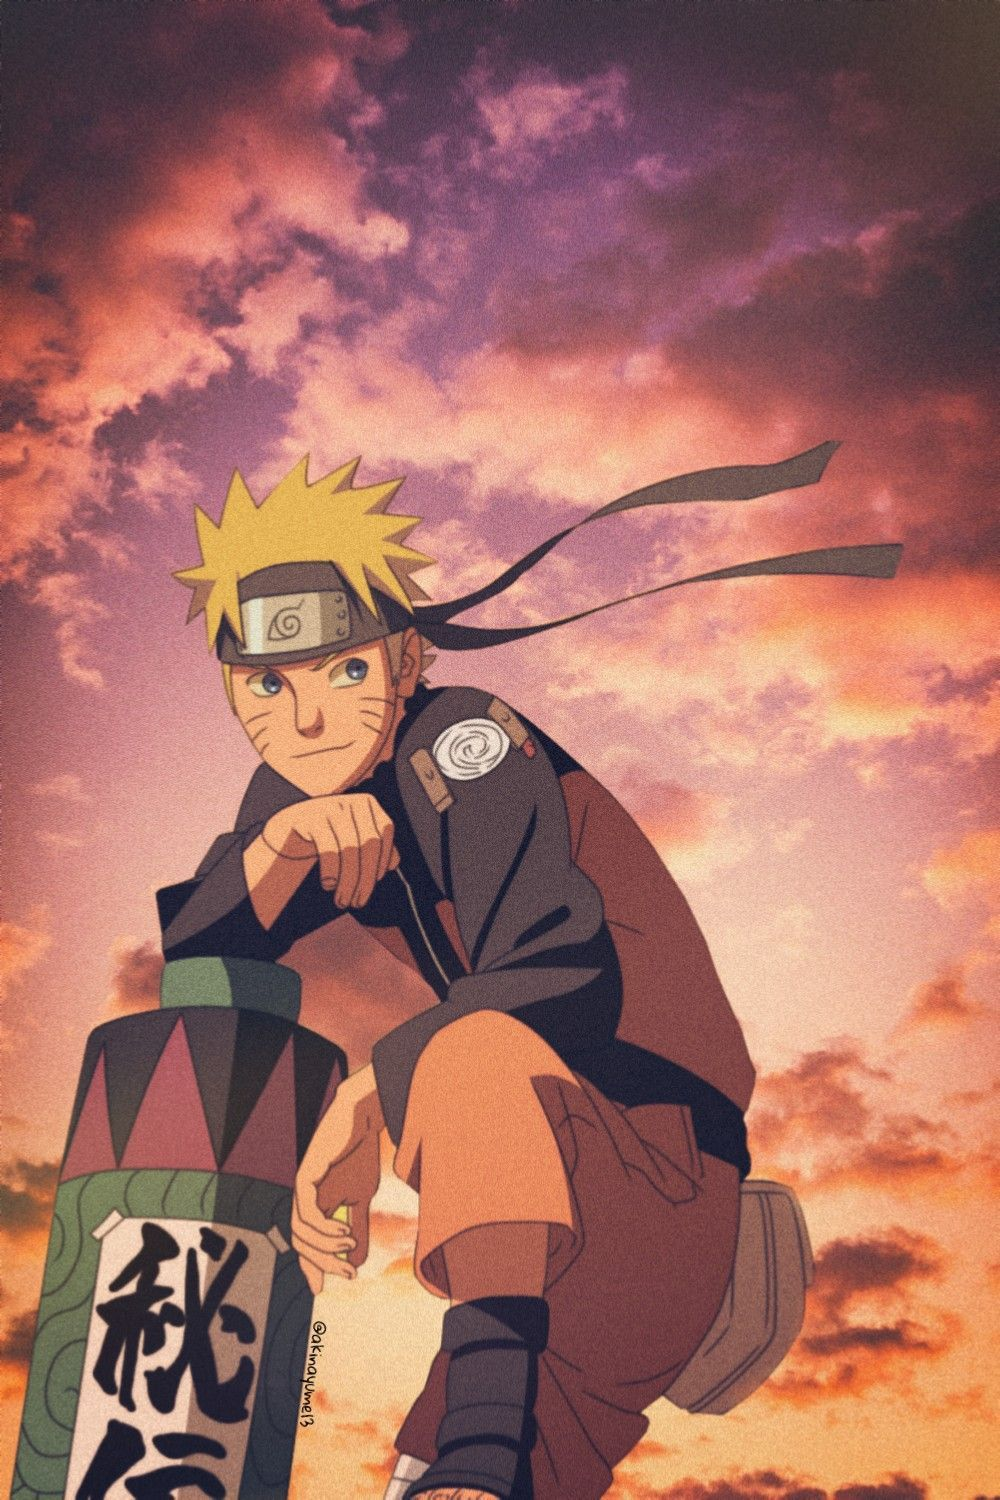 Pin by Miley Prime on •Naruto• in 2020 Naruto wallpaper